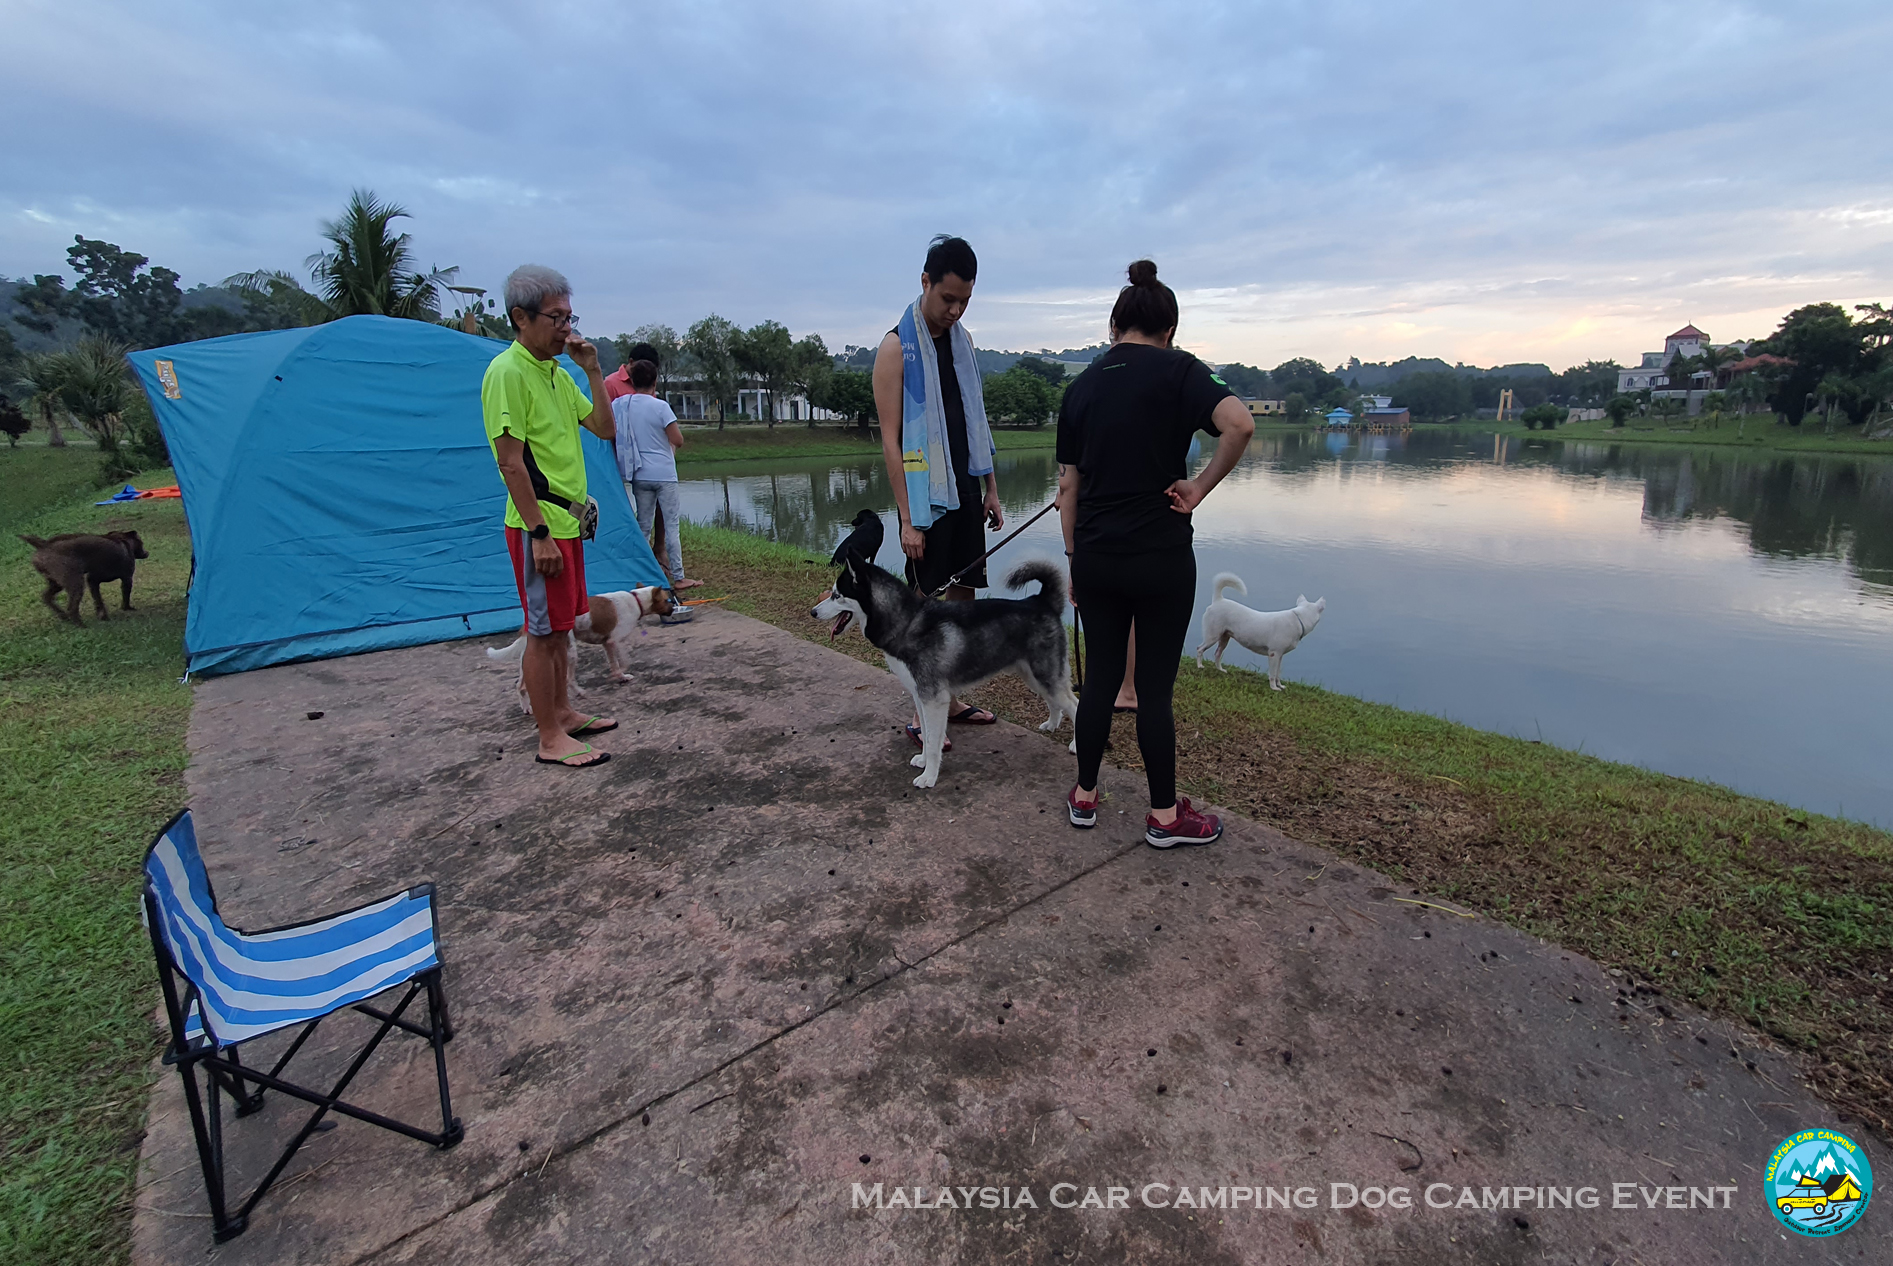 dog_camping_event_selangor_camping_site_malaysia_car_camping_private_event_organizer-8